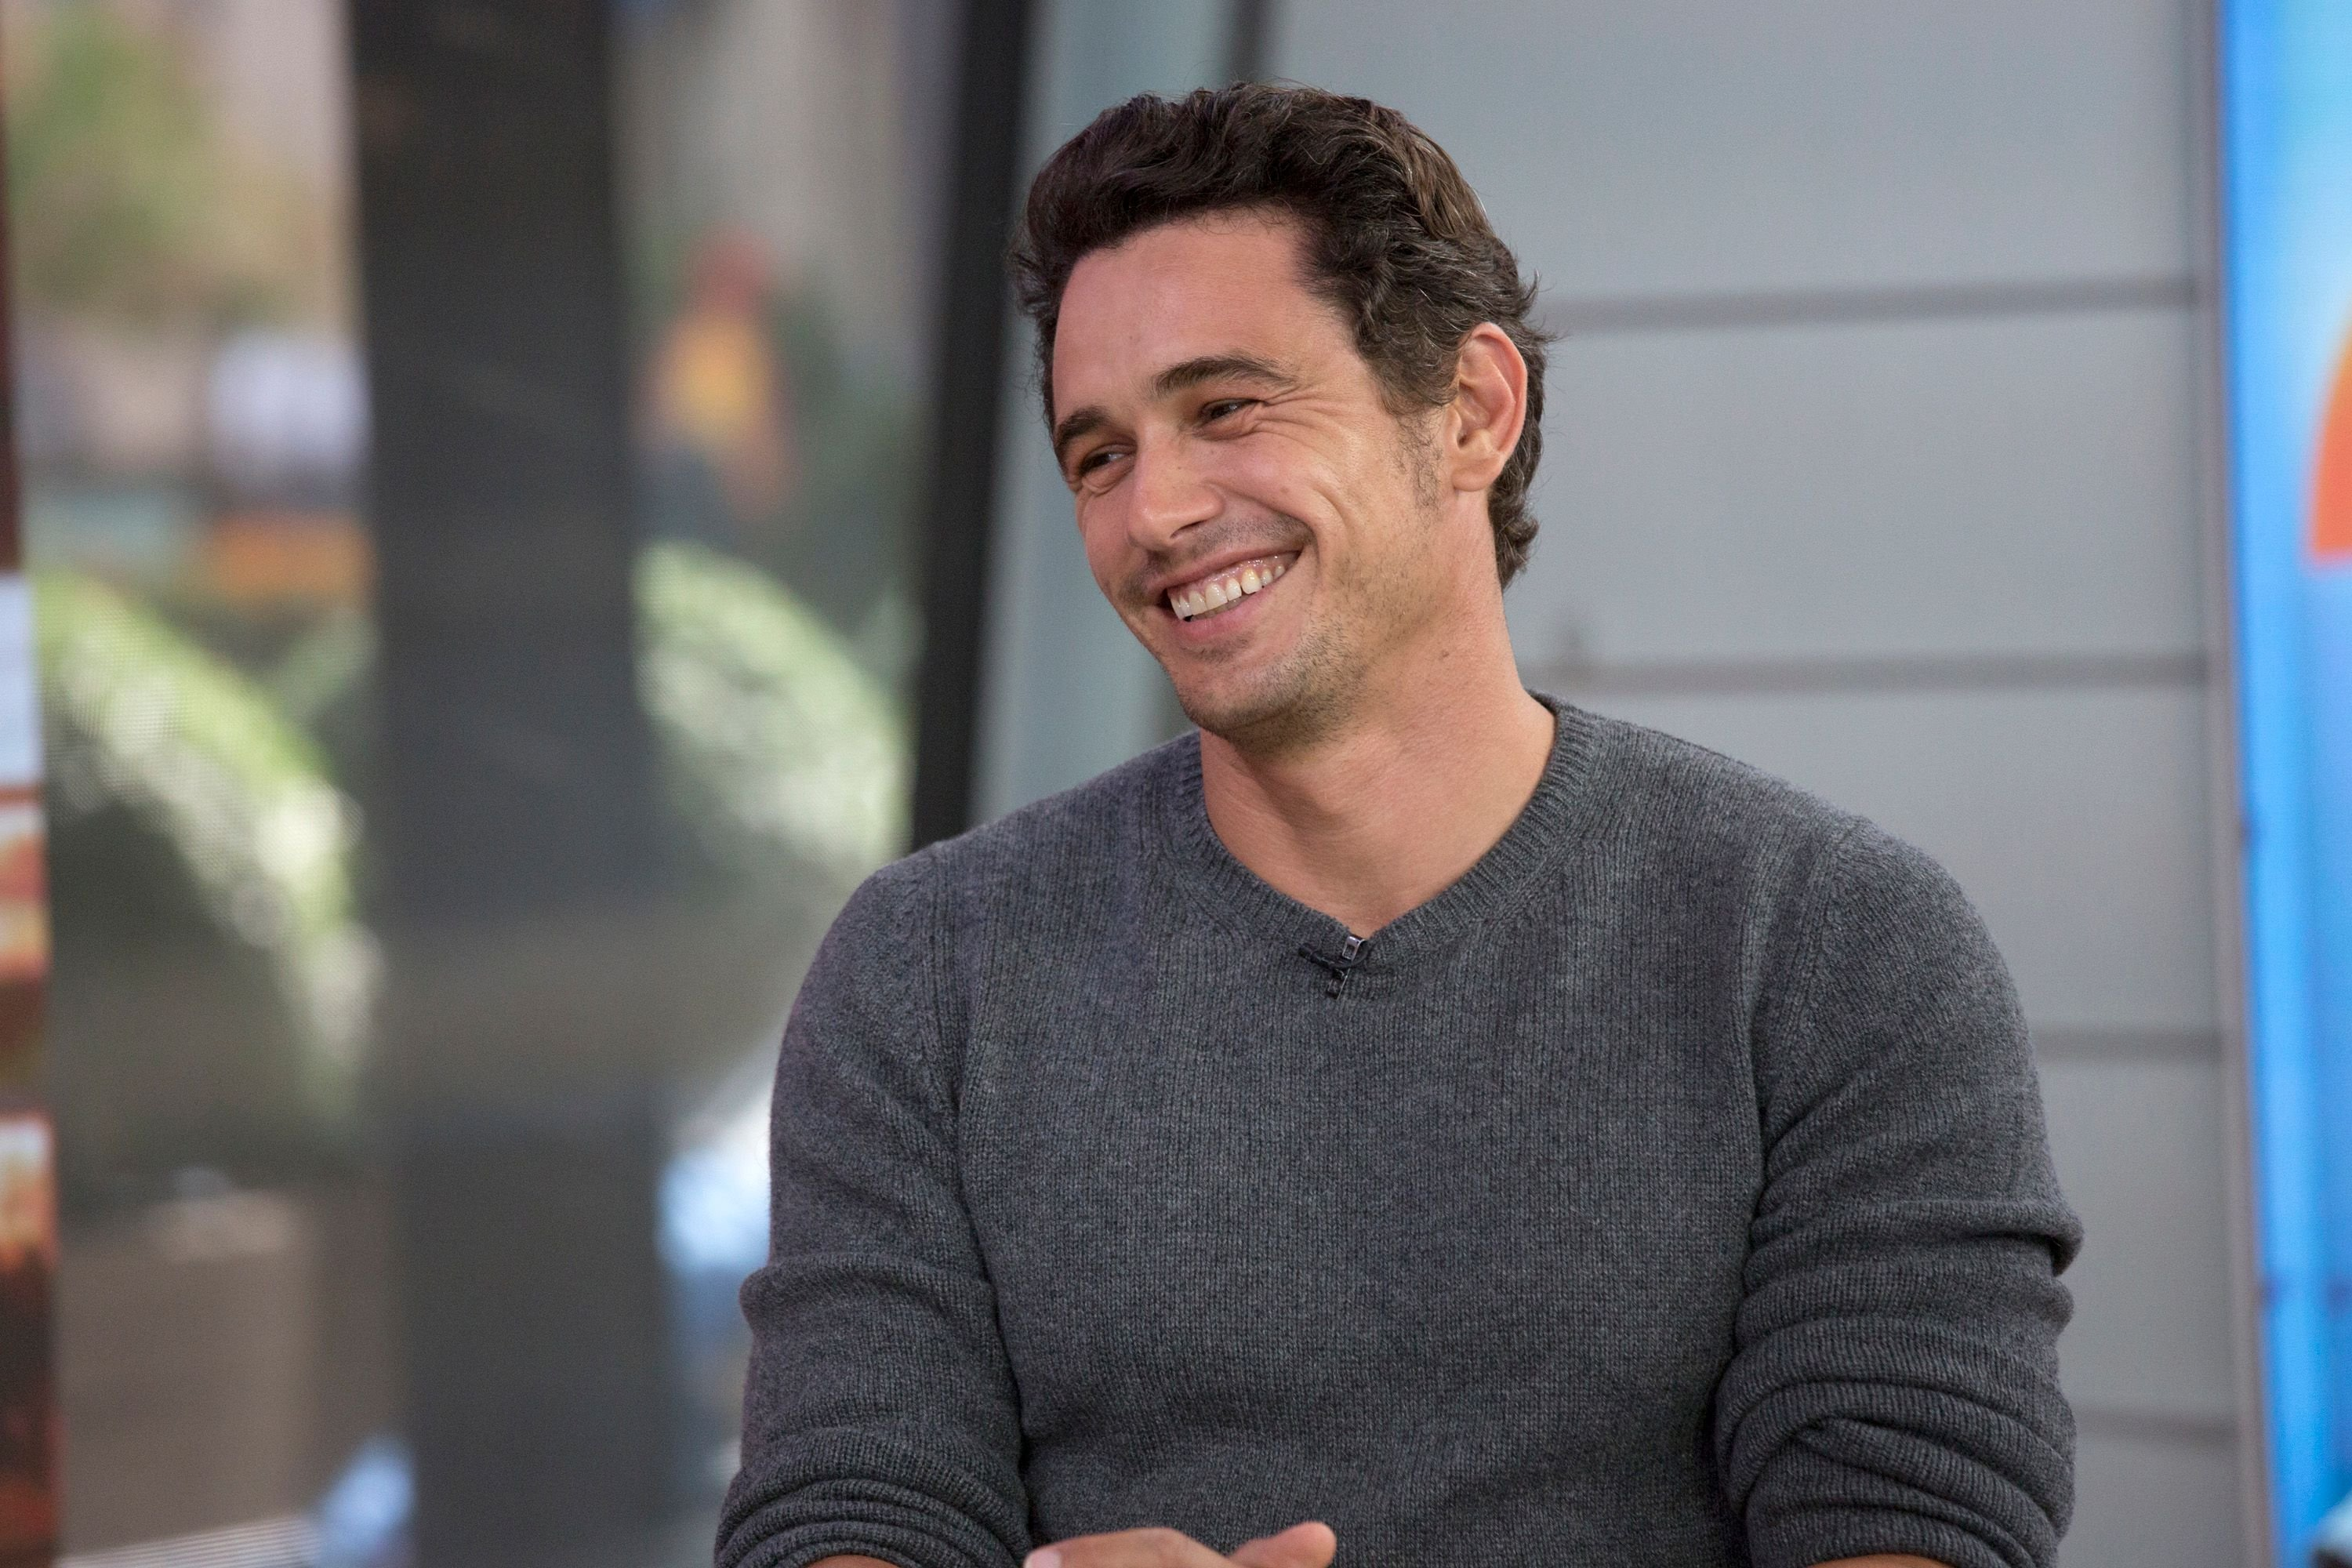 James Franco on 'TODAY' on September 9, 2017 | Photo: Getty Images